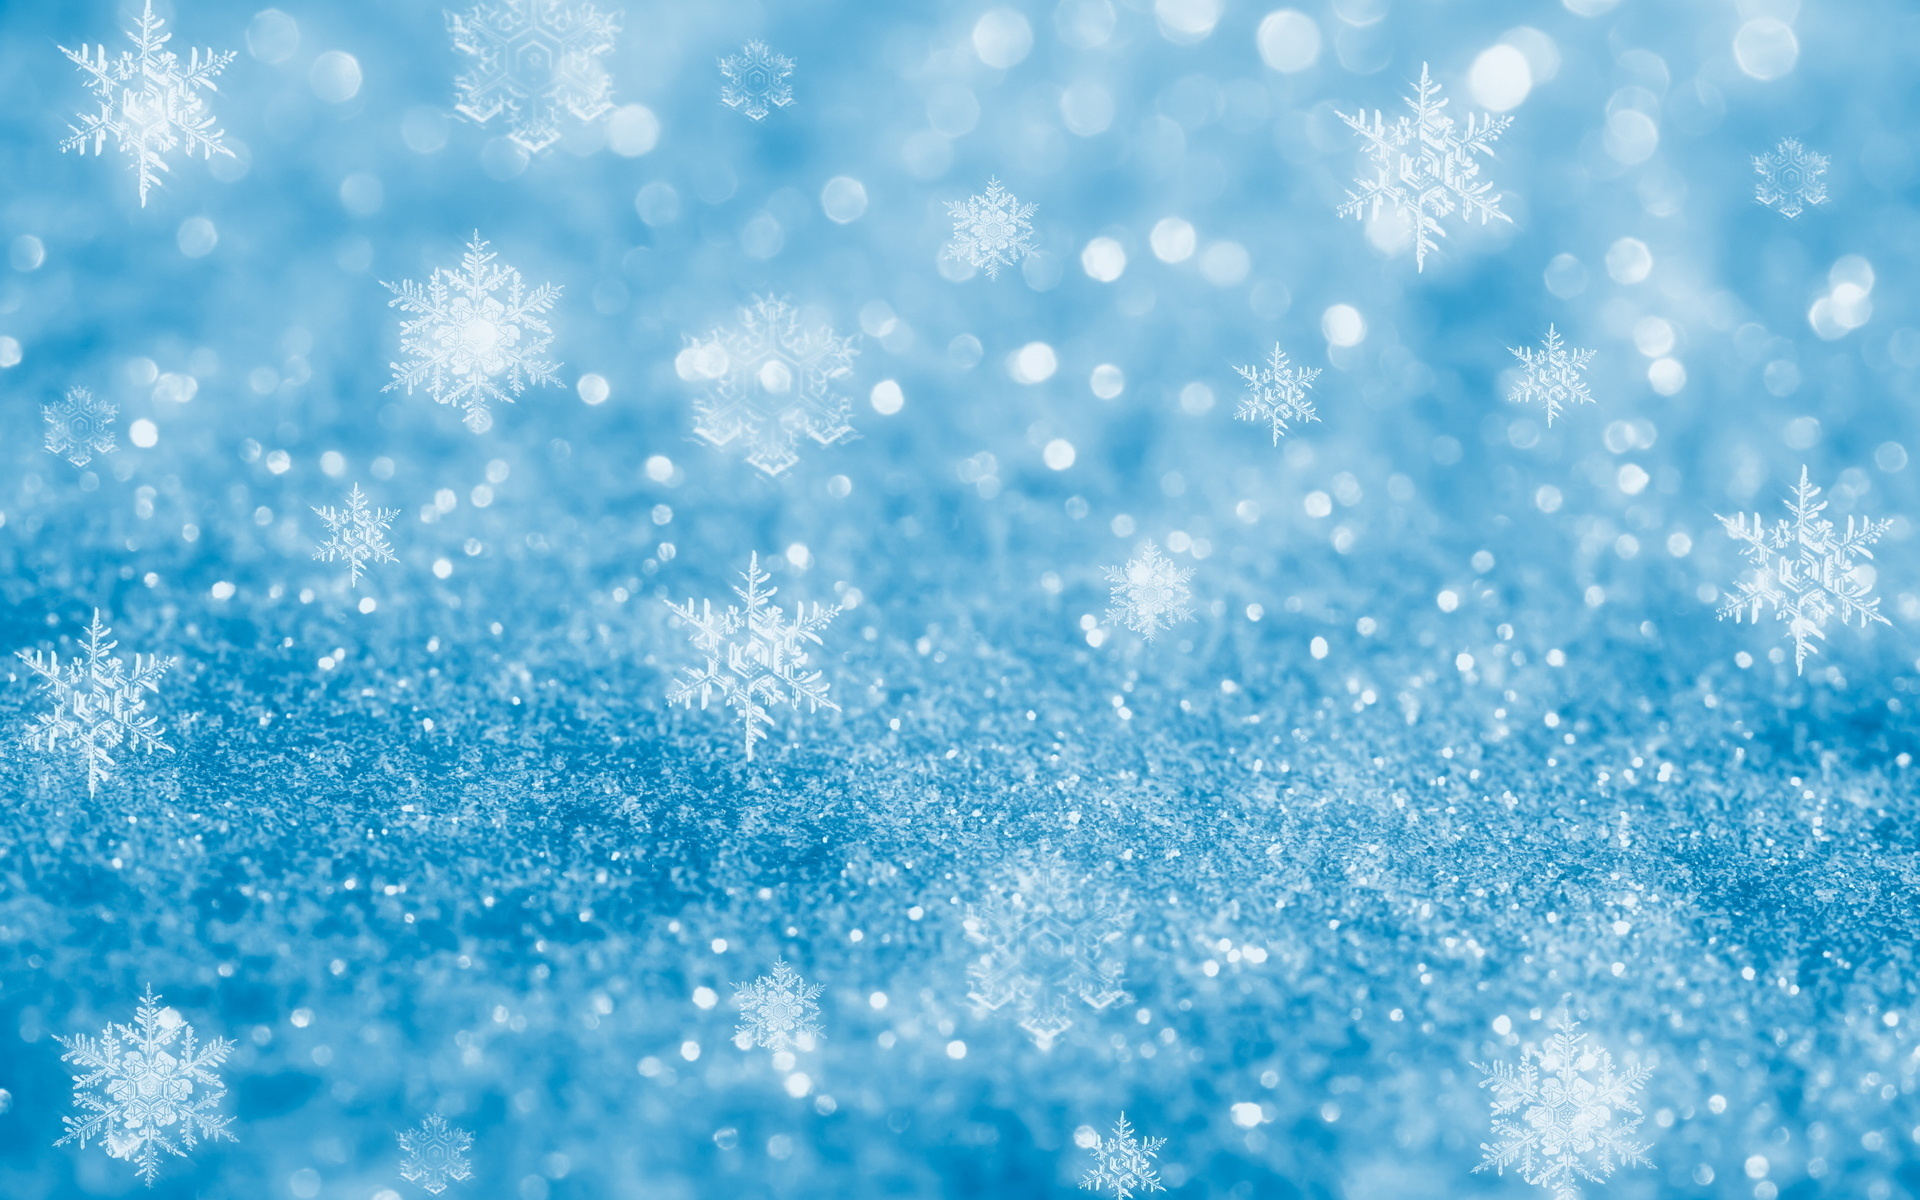 Blue Glitter Backgrounds Images amp Pictures   Becuo 1920x1200